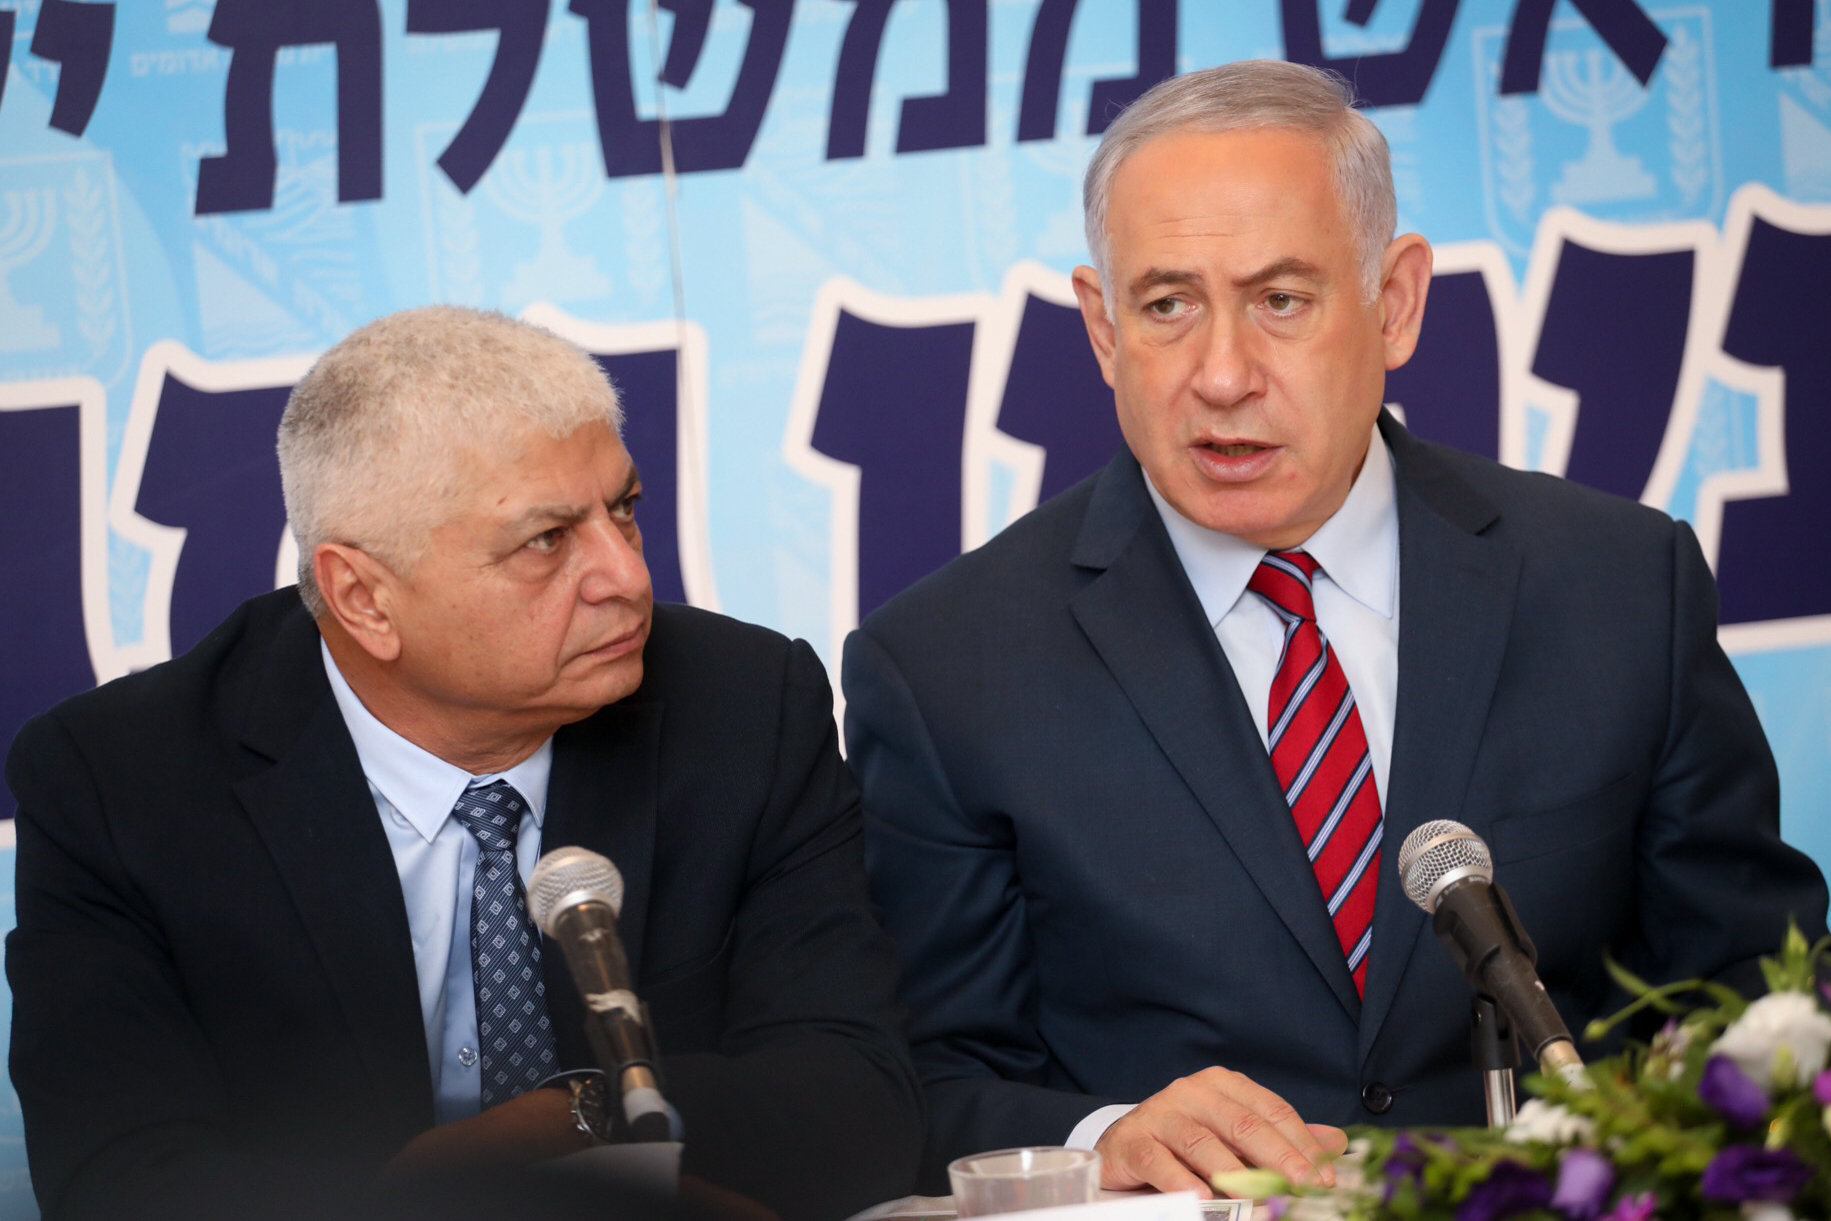 Netanyahu backs annexation of West Bank settlements